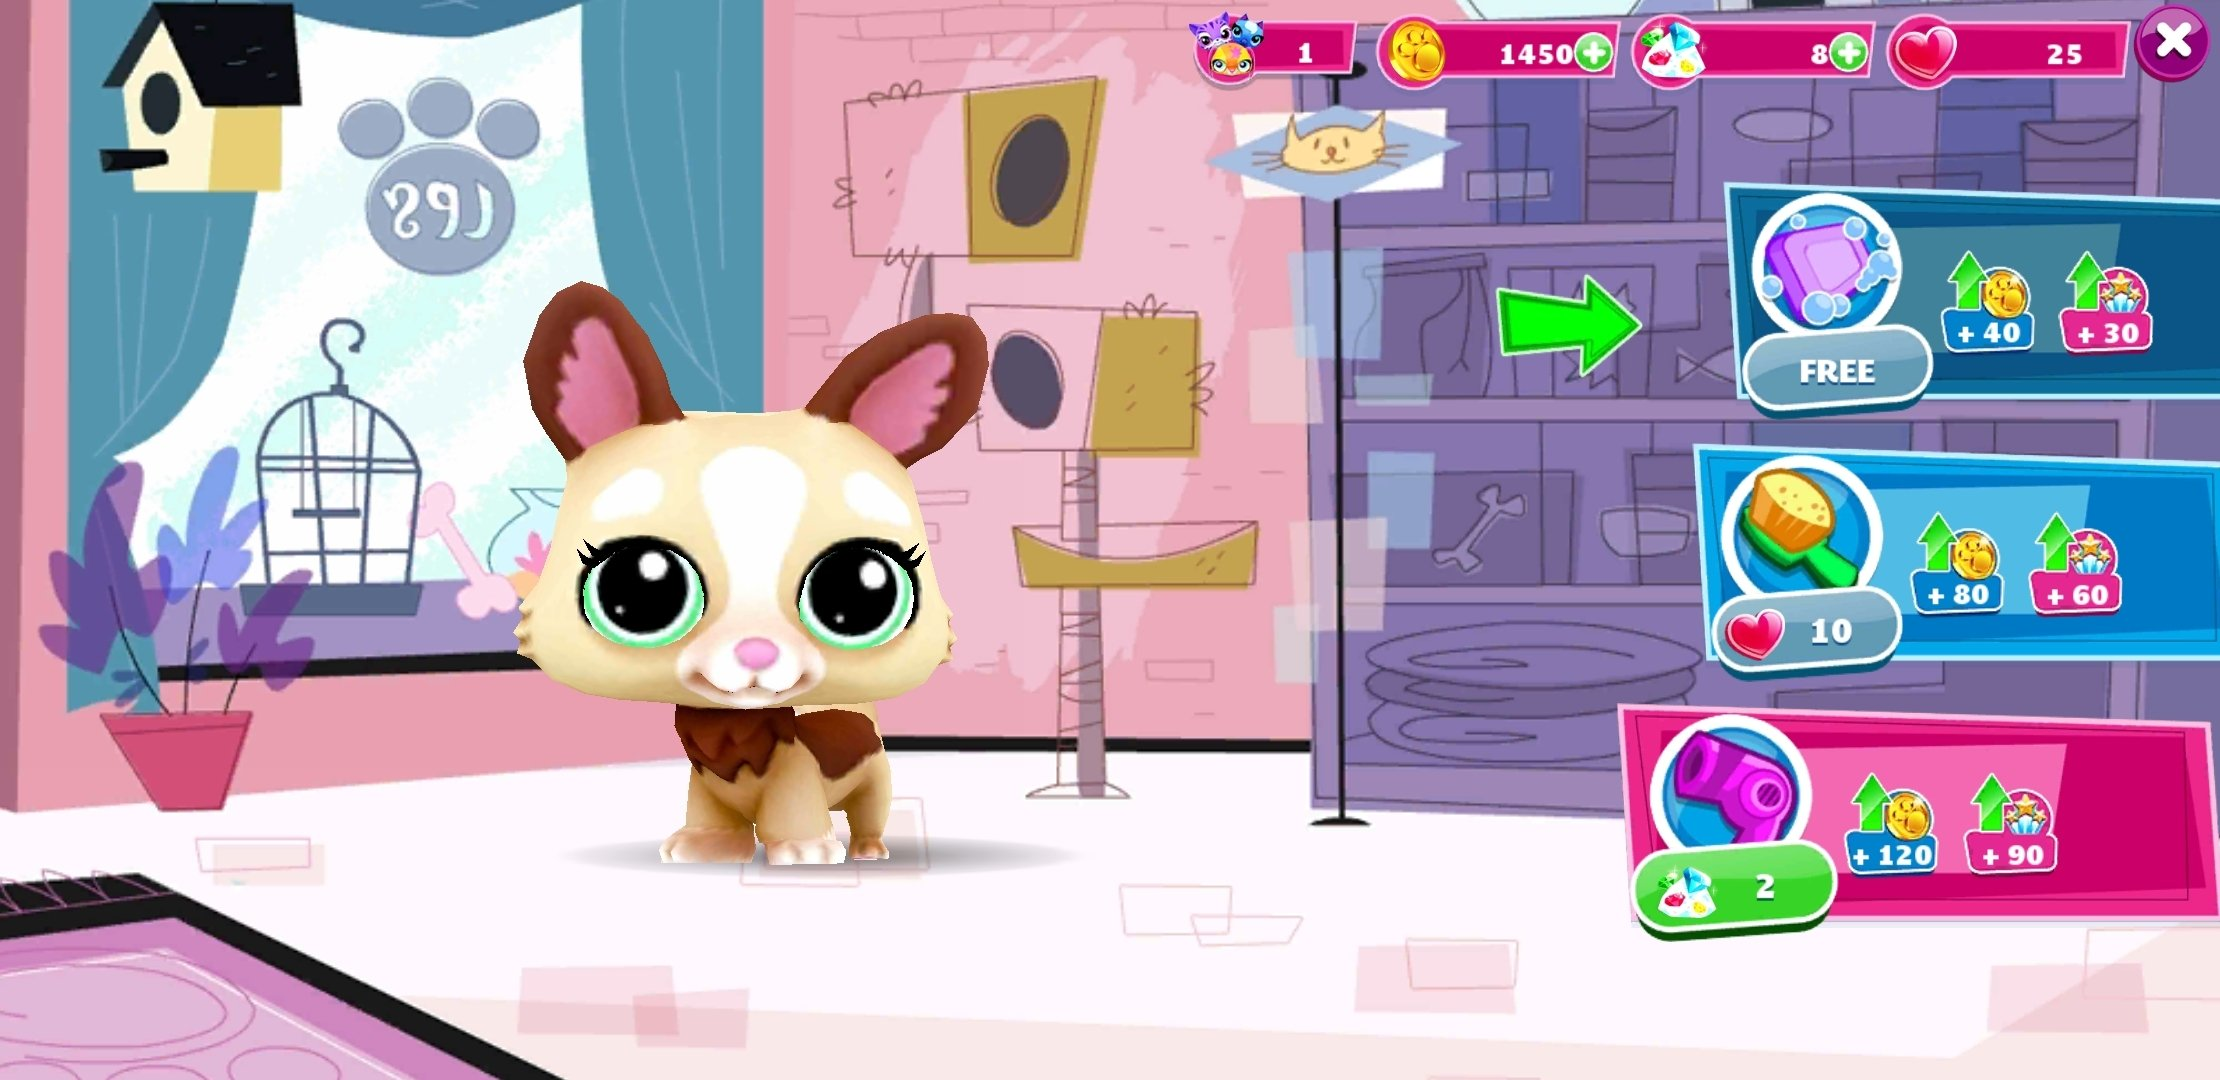 Littlest Pet Shop Android image 5